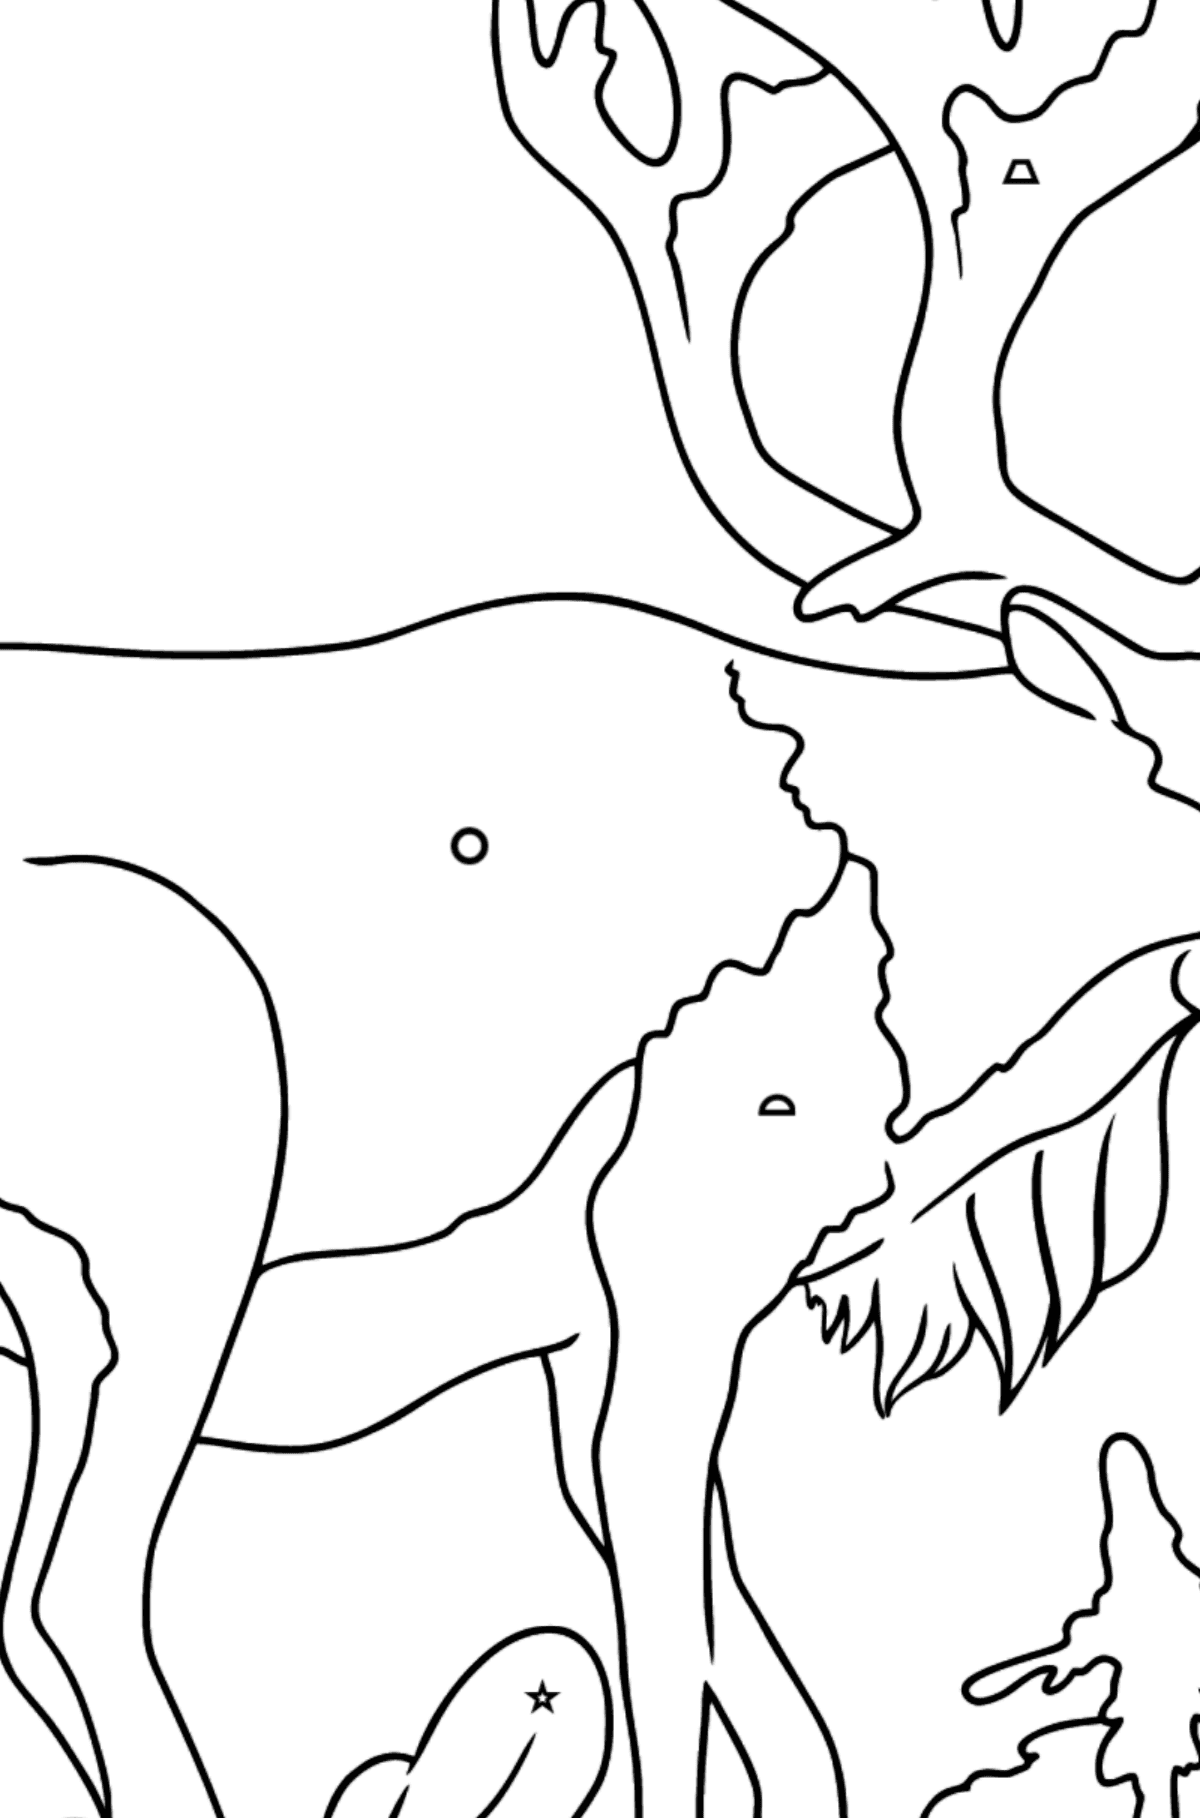 Coloring Page - A Deer with Beautiful Antlers - Coloring by Geometric Shapes for Kids